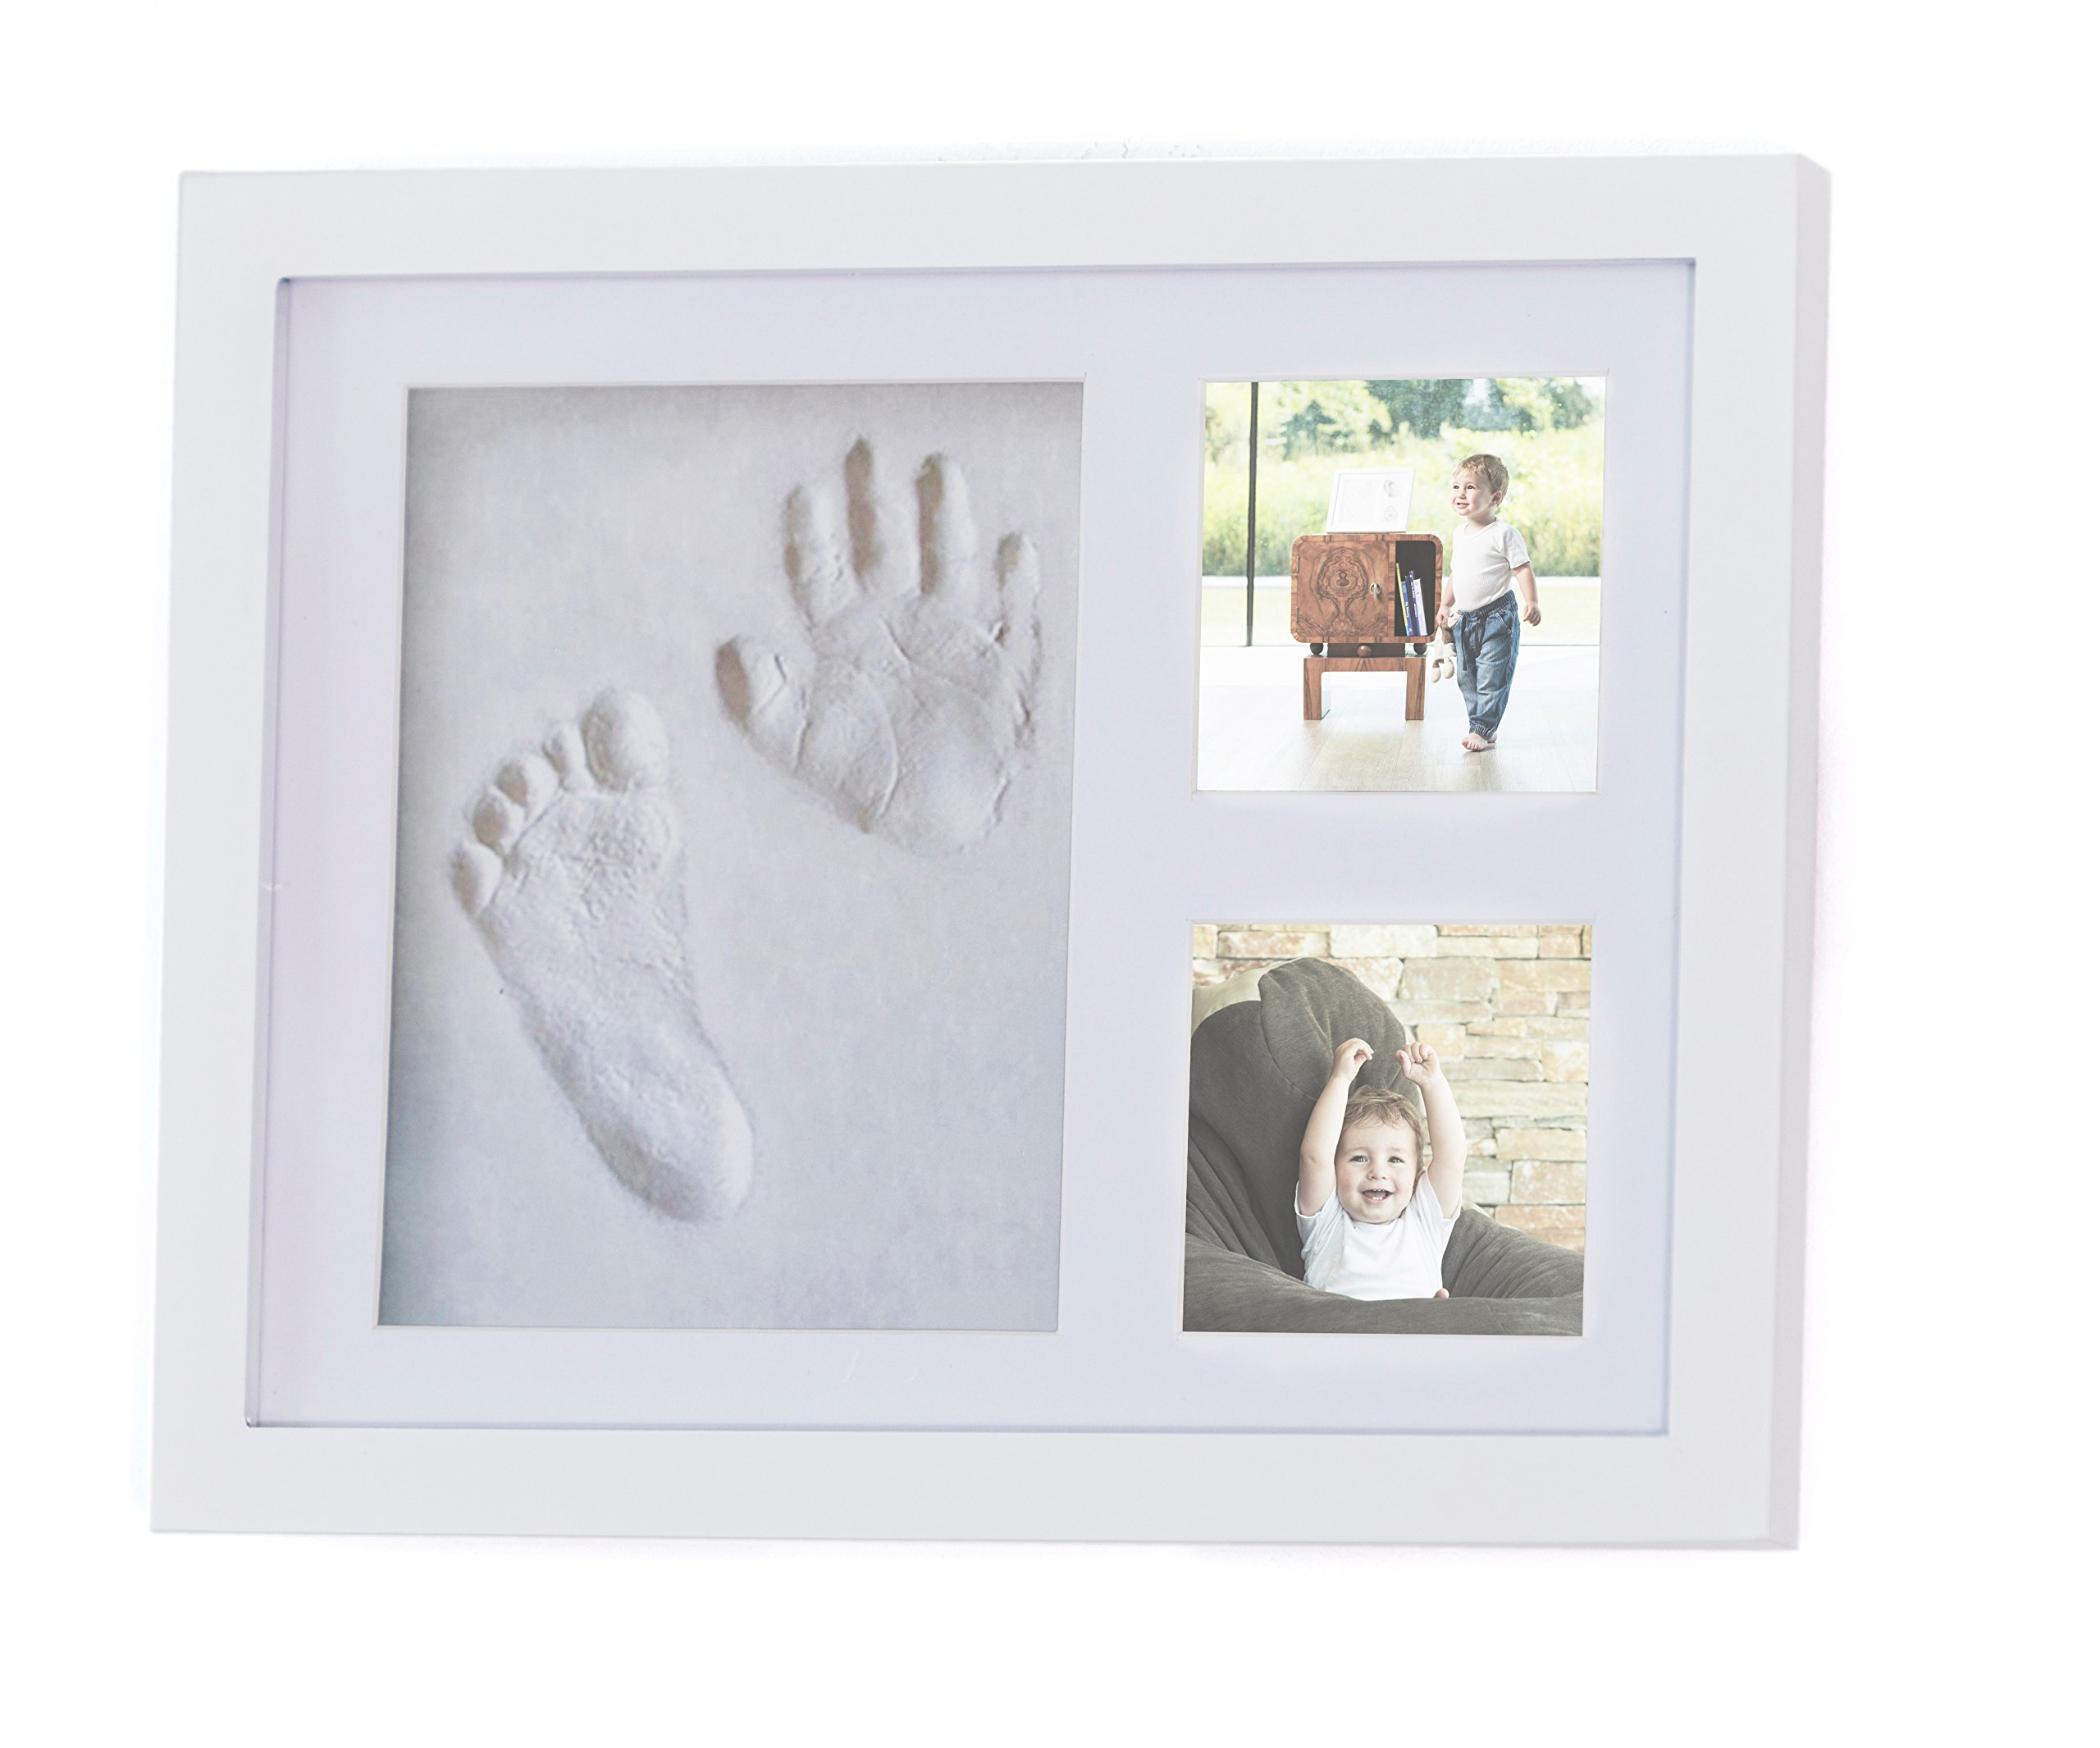 Whitewood Picture Frame kit for Family by 4Baby Stars -Home Room Wall & Table Decor -Awesome Boys & Girls Newborn Baby Shower Gift for Registry -Unique & Cute Footprint & Handprint Clay Memorable Art